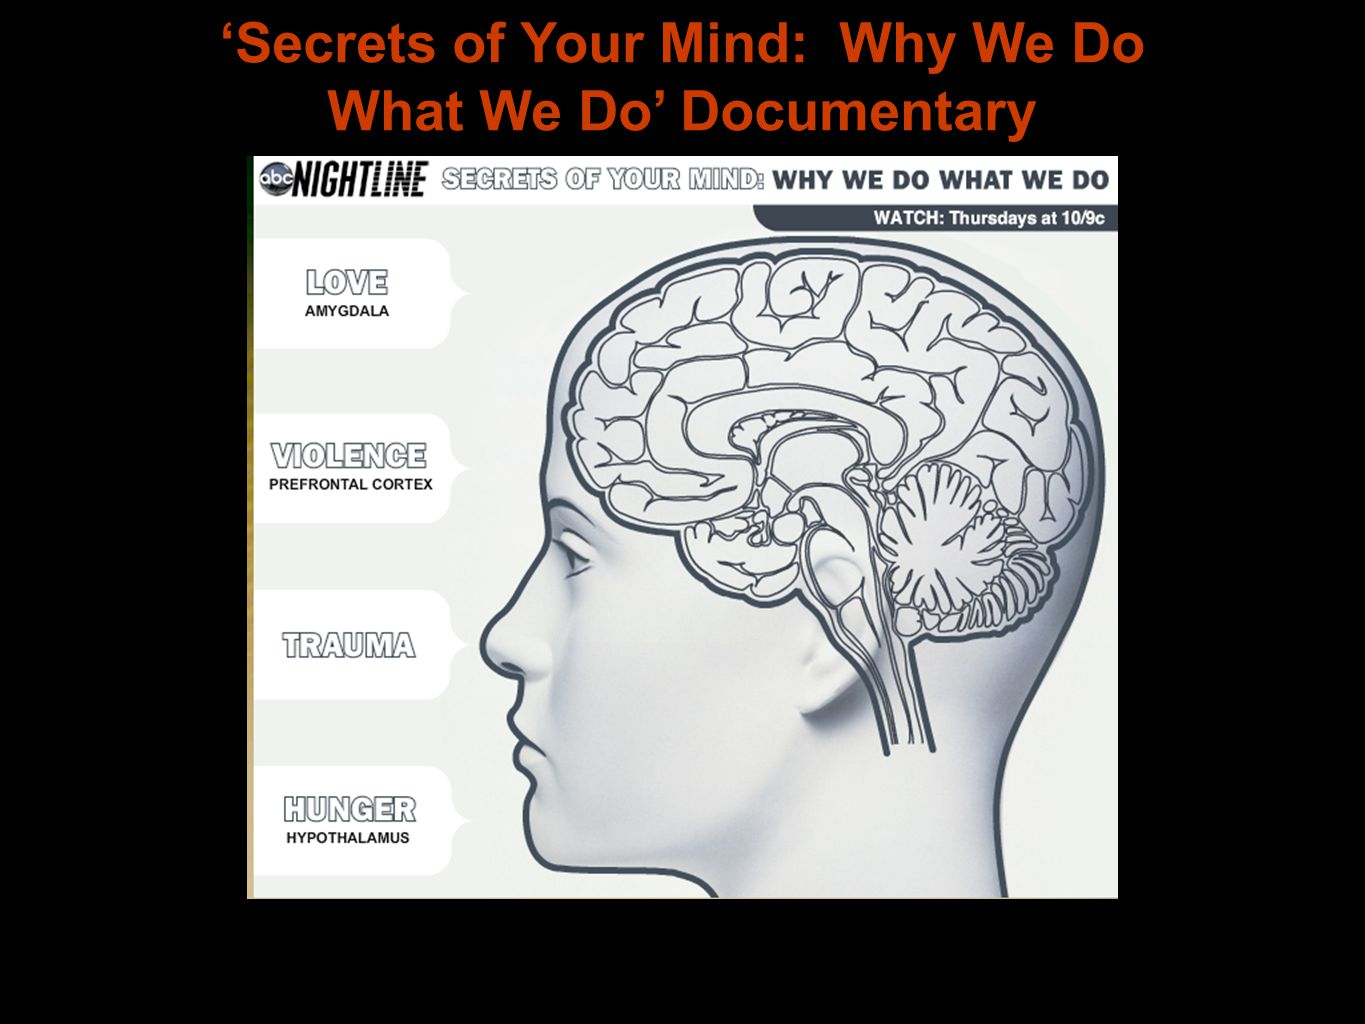 'Secrets of Your Mind: Why We Do What We Do' Documentary